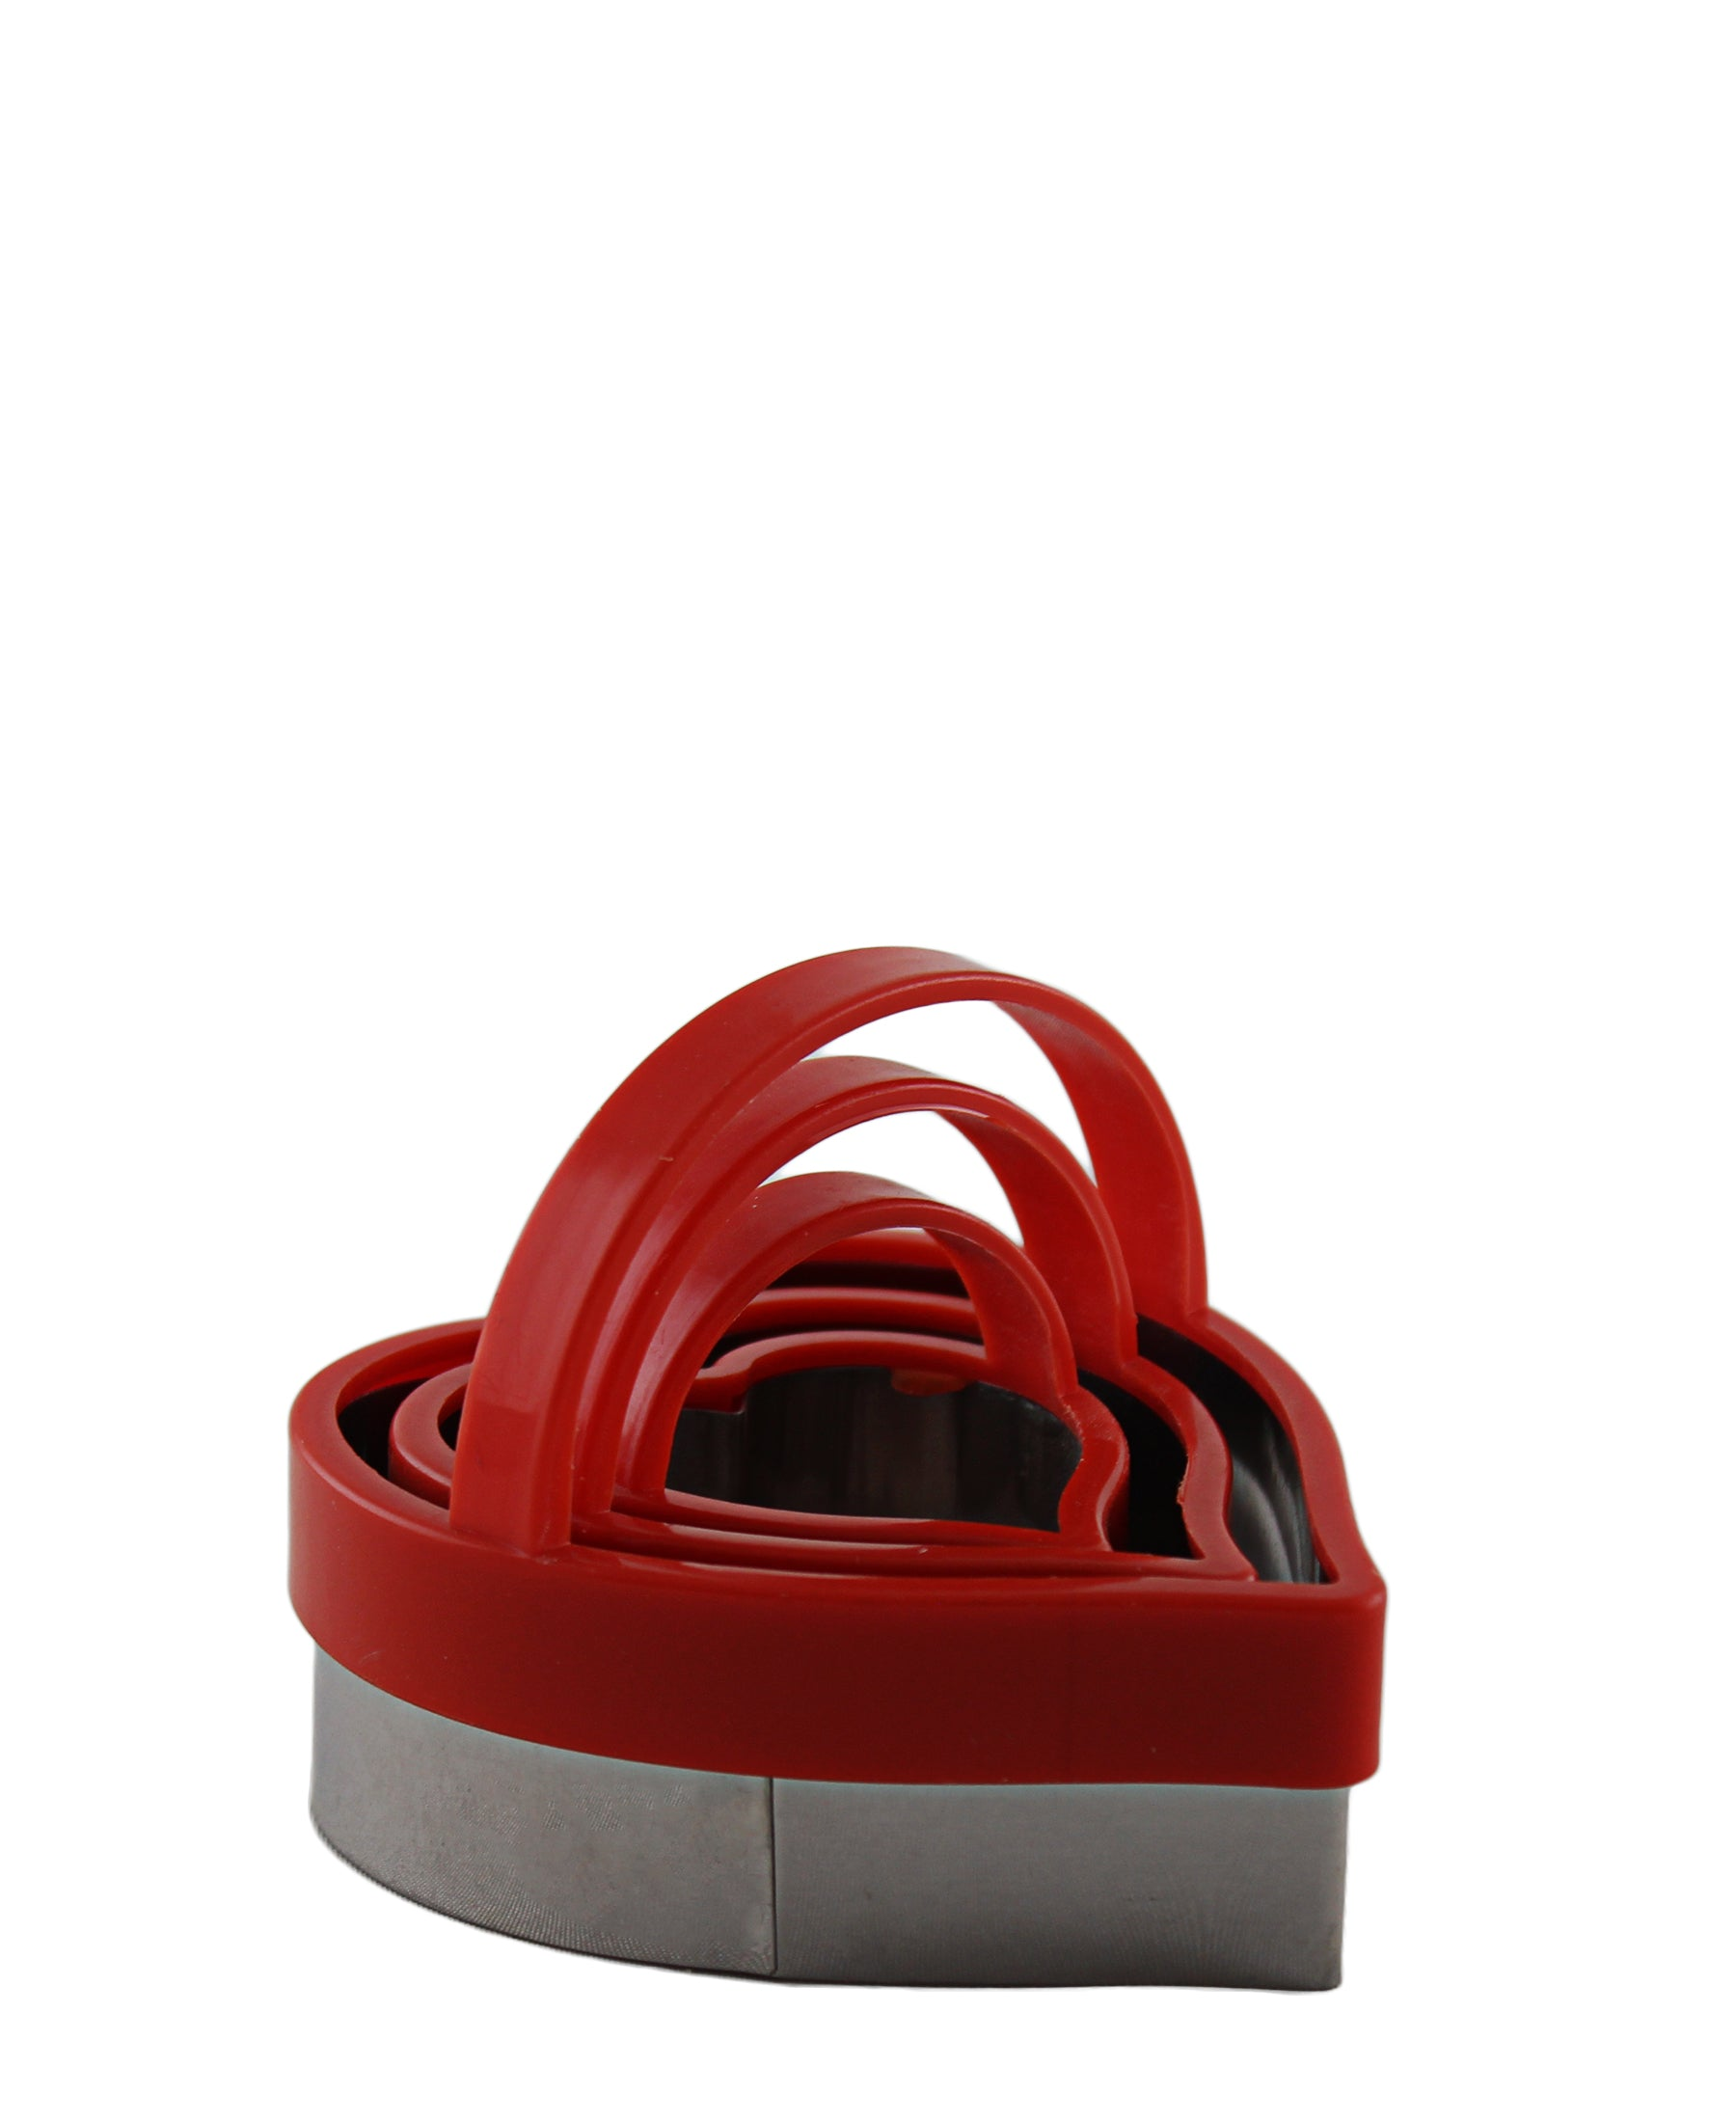 Progressive Heart Cookie Cutter 3 Piece - Red